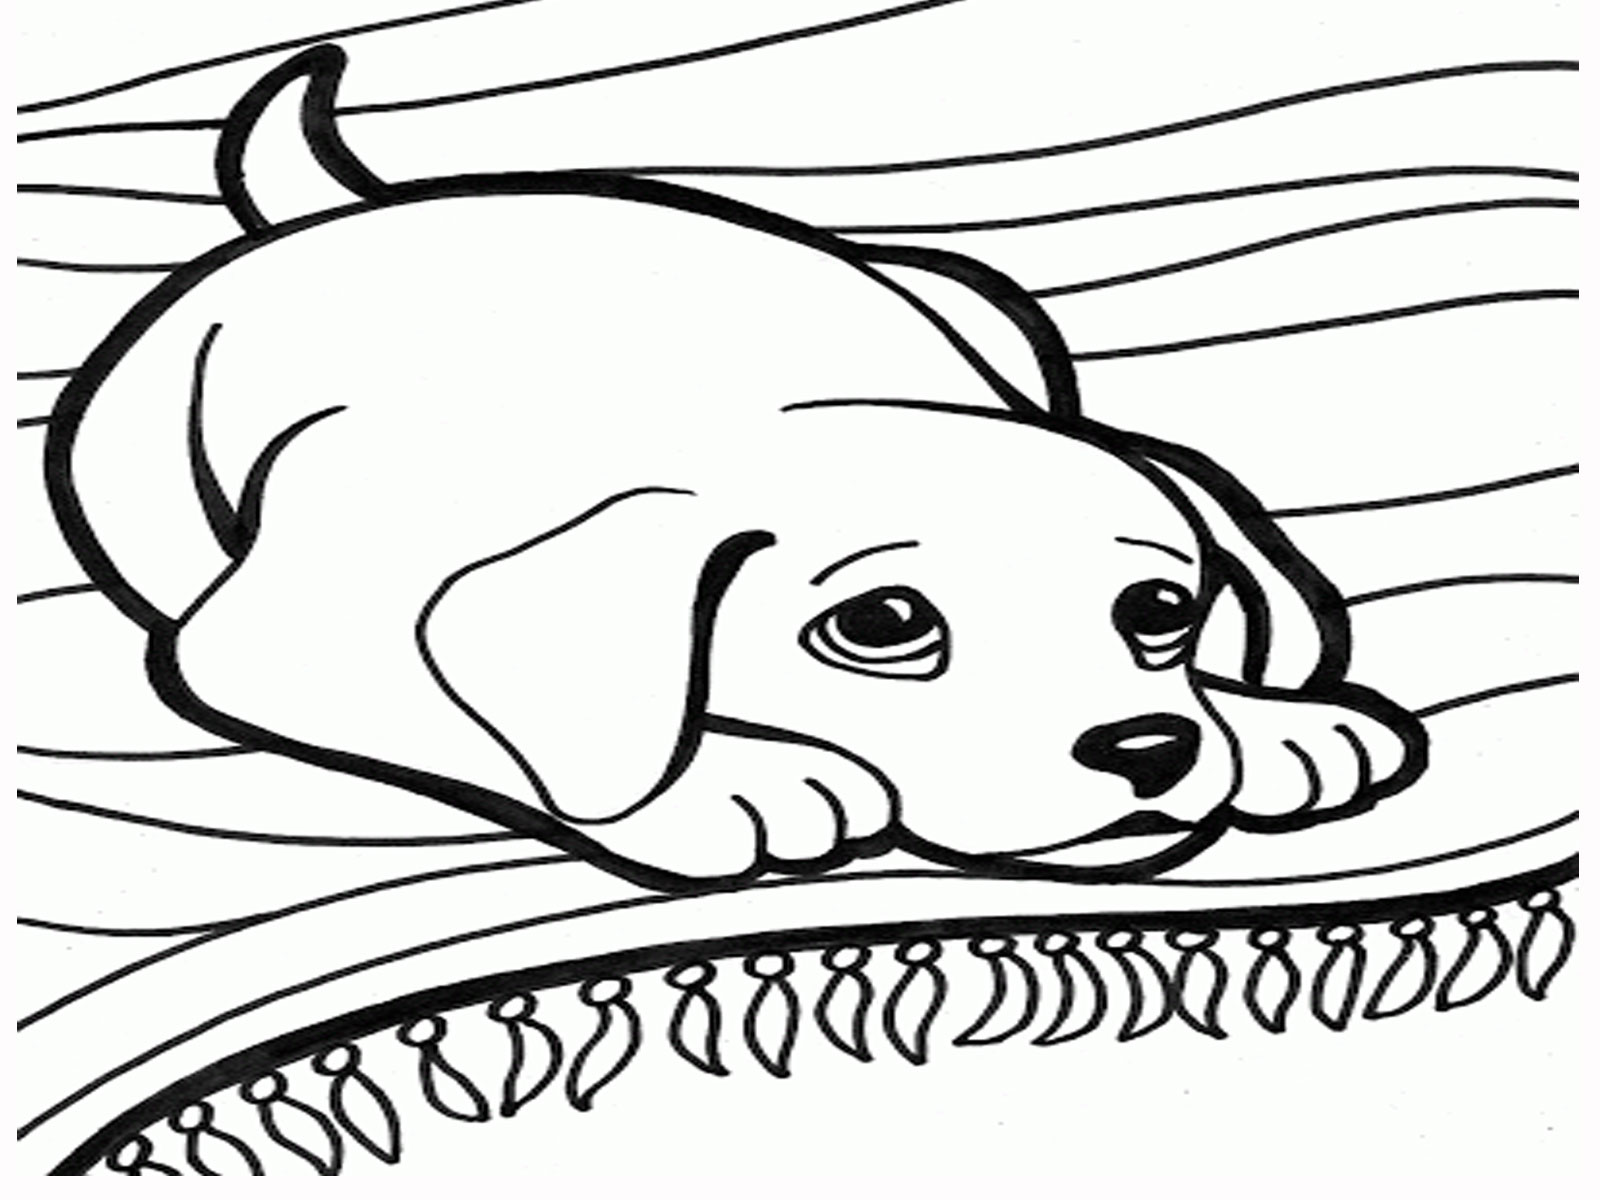 1600x1200 Fortune Picture Of A Dog To Color Coloring Pages Book Wallpaper